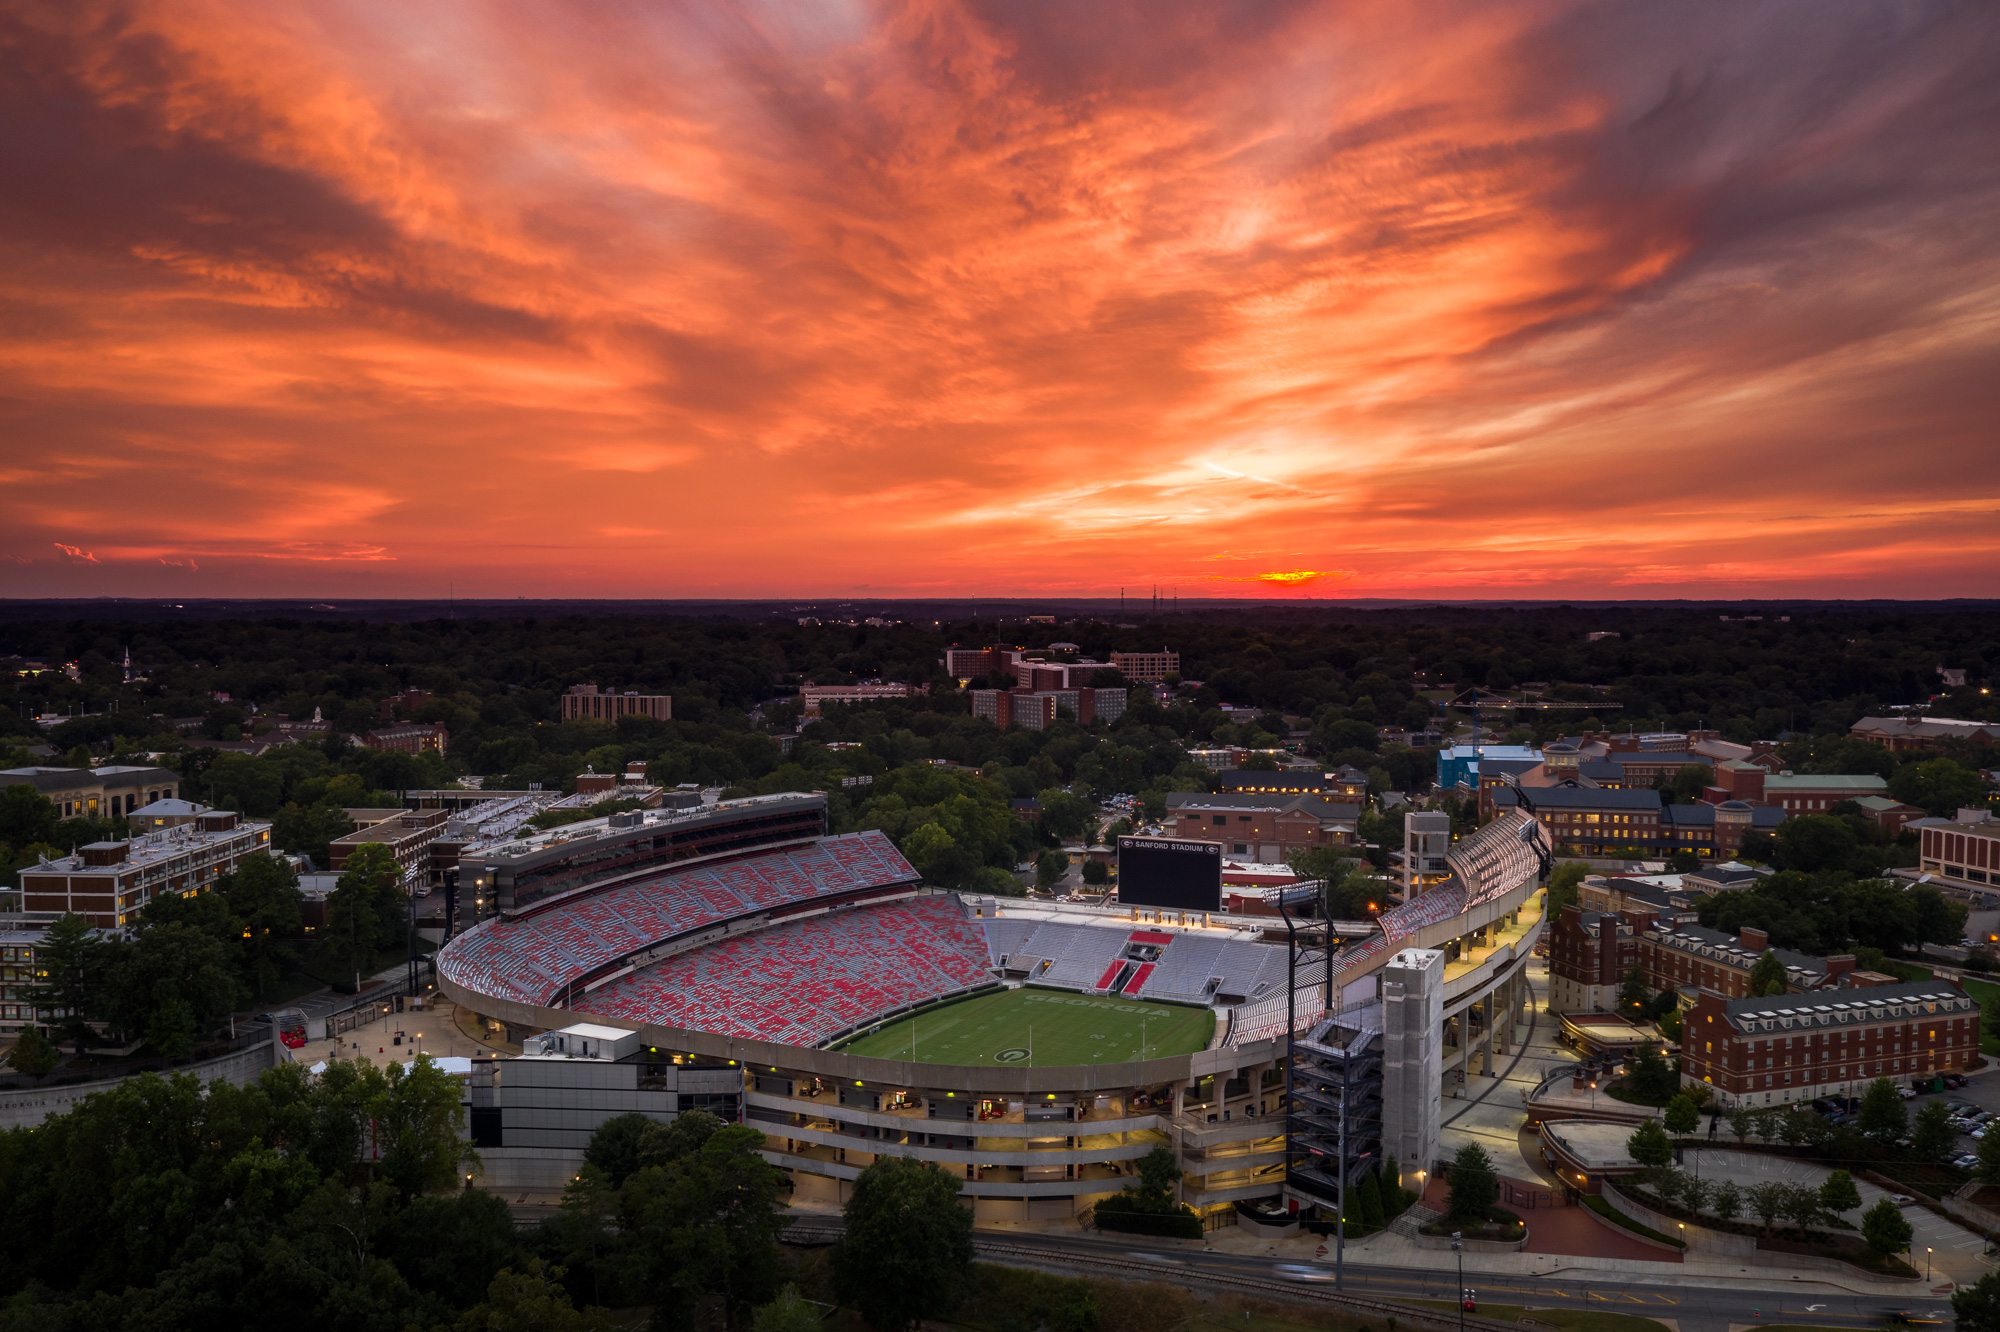 Sunset over Sanford Stadium in Athens, Georgia. Photo by Chris Greer